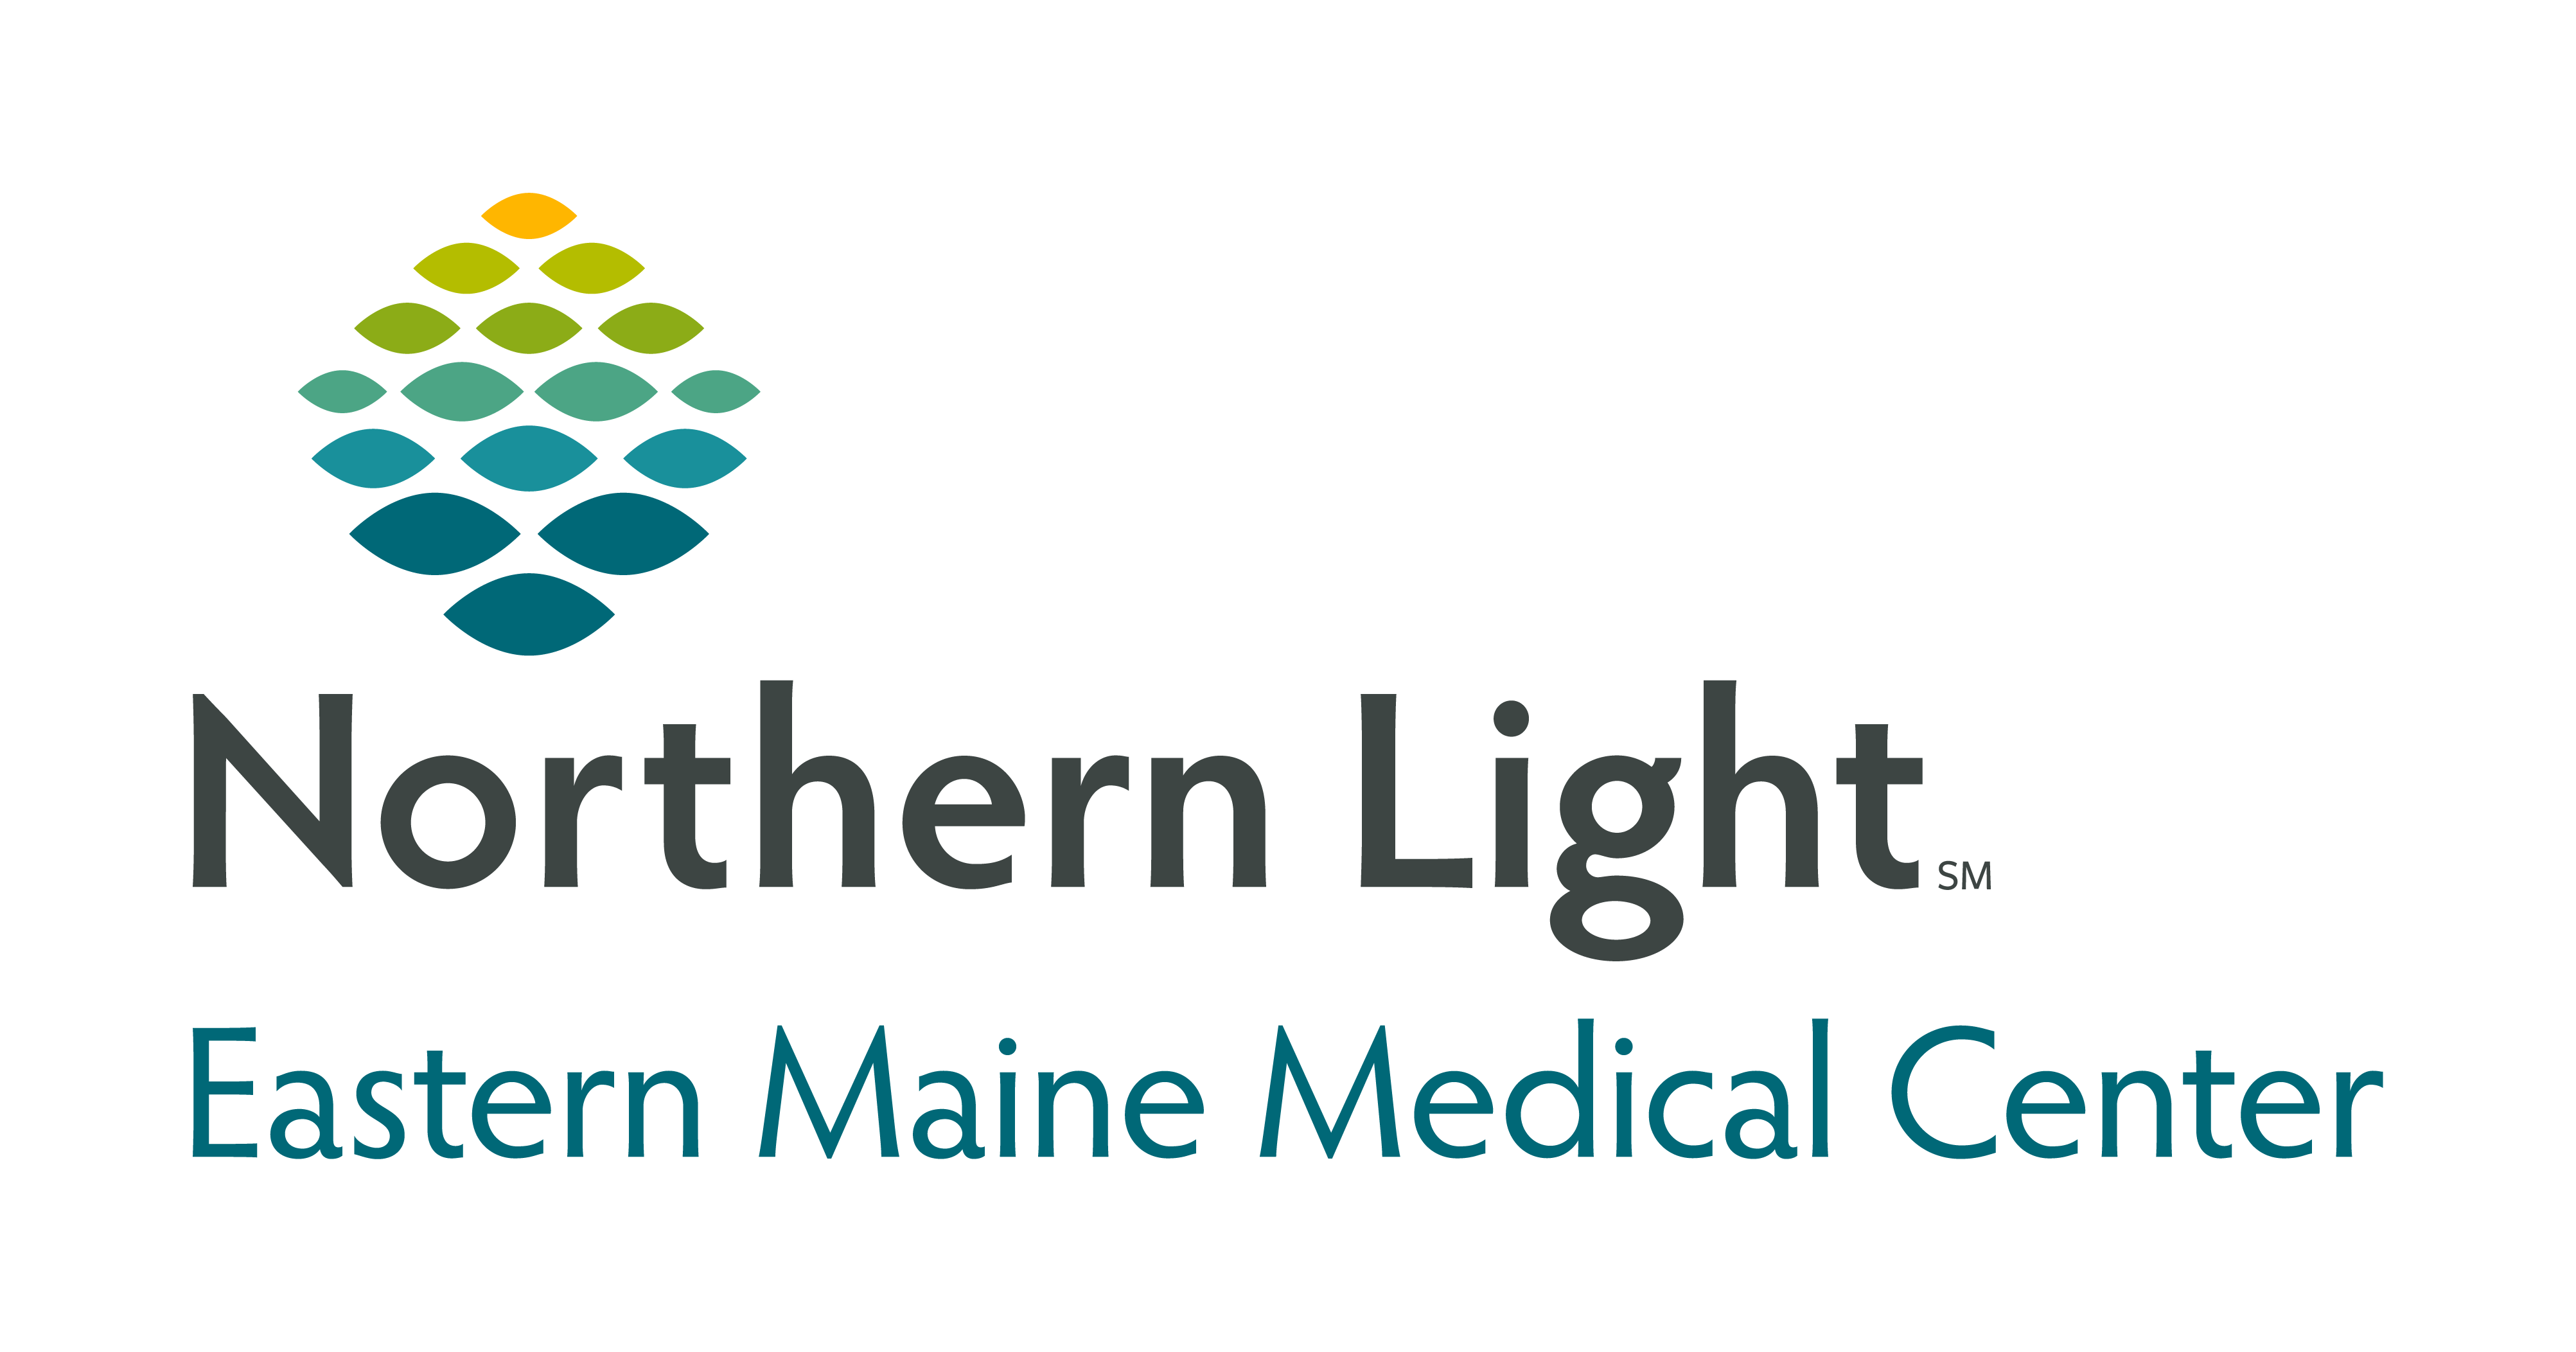 Primary Care Physicians in Bangor, ME - Northern Light Eastern Maine Medical Center